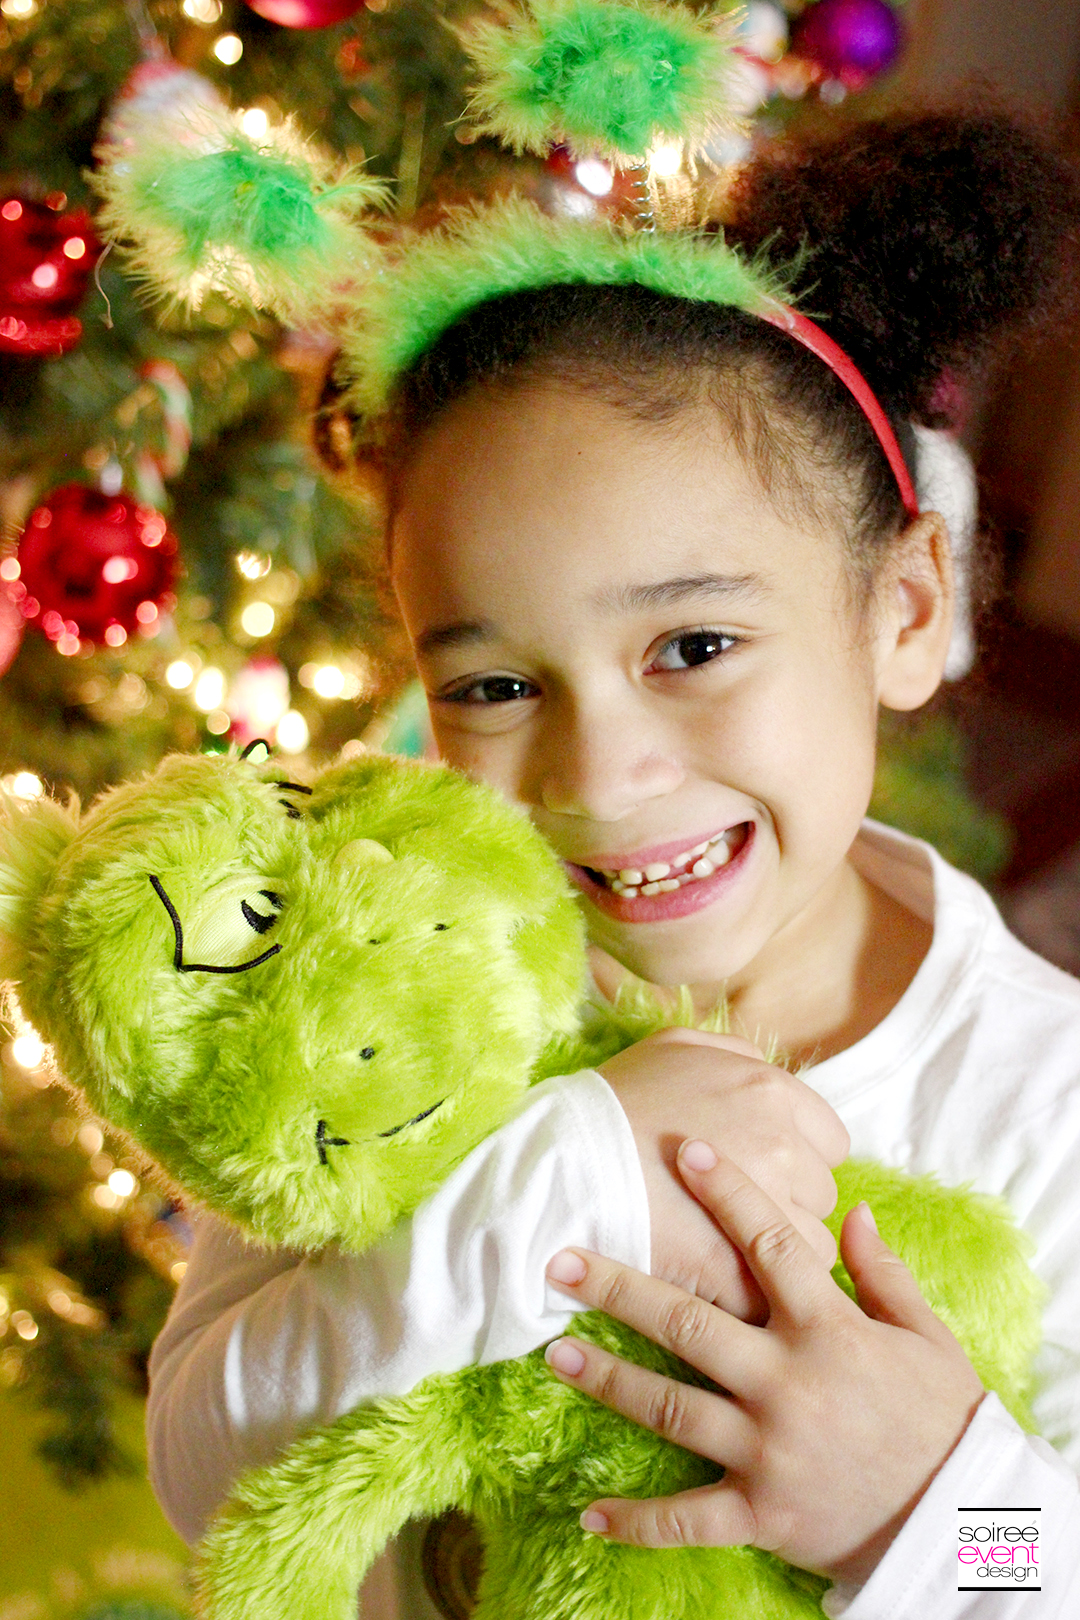 Grinch Party Ideas - Grinch Toys